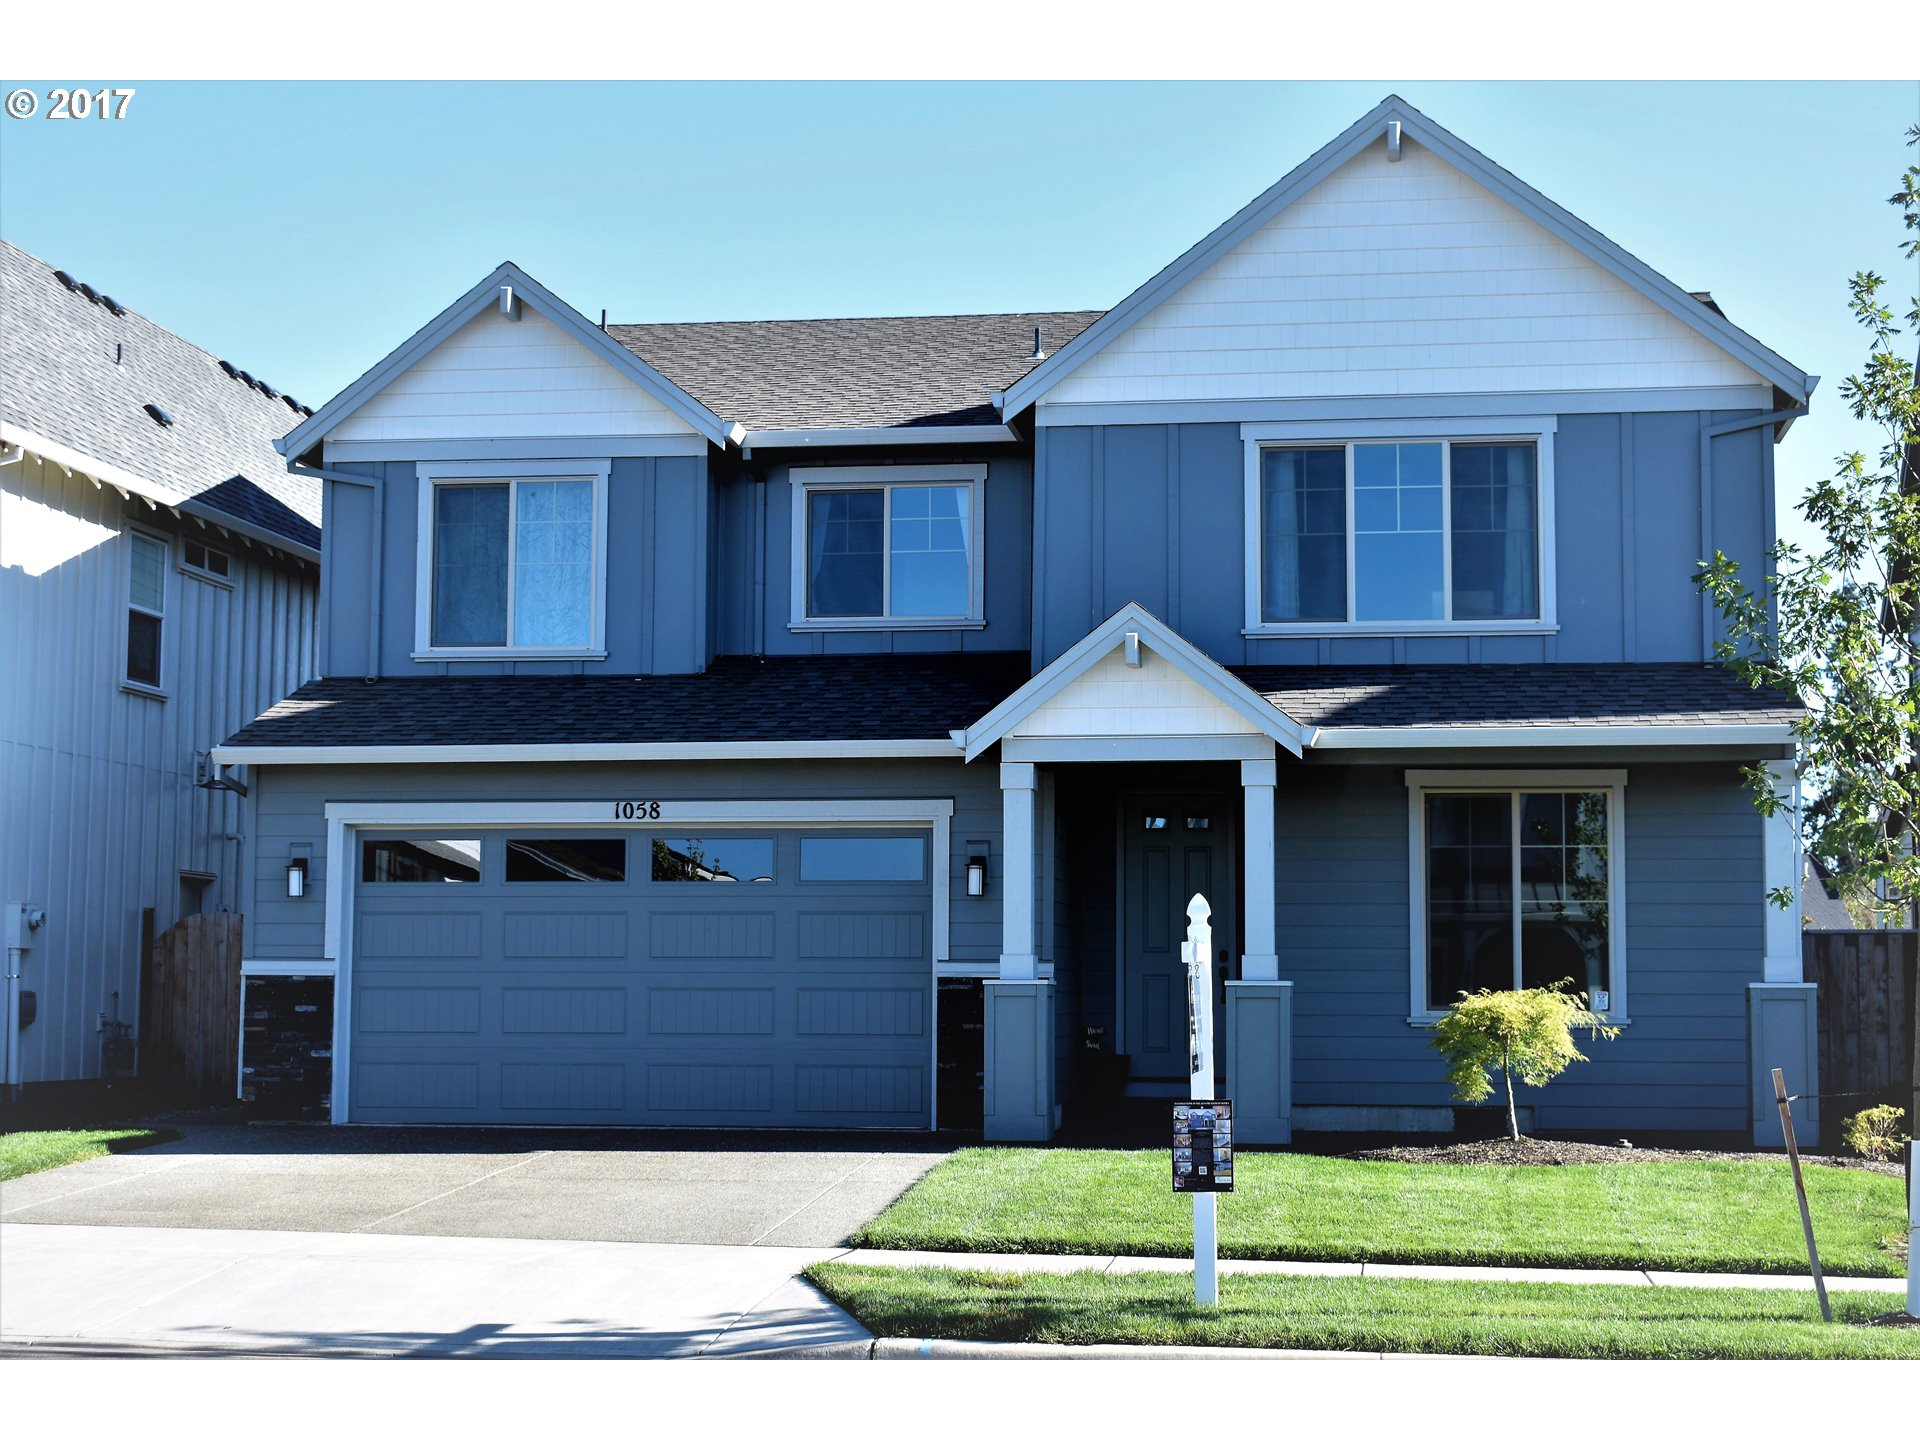 1058 ANDY AVE, Forest Grove, OR 97116